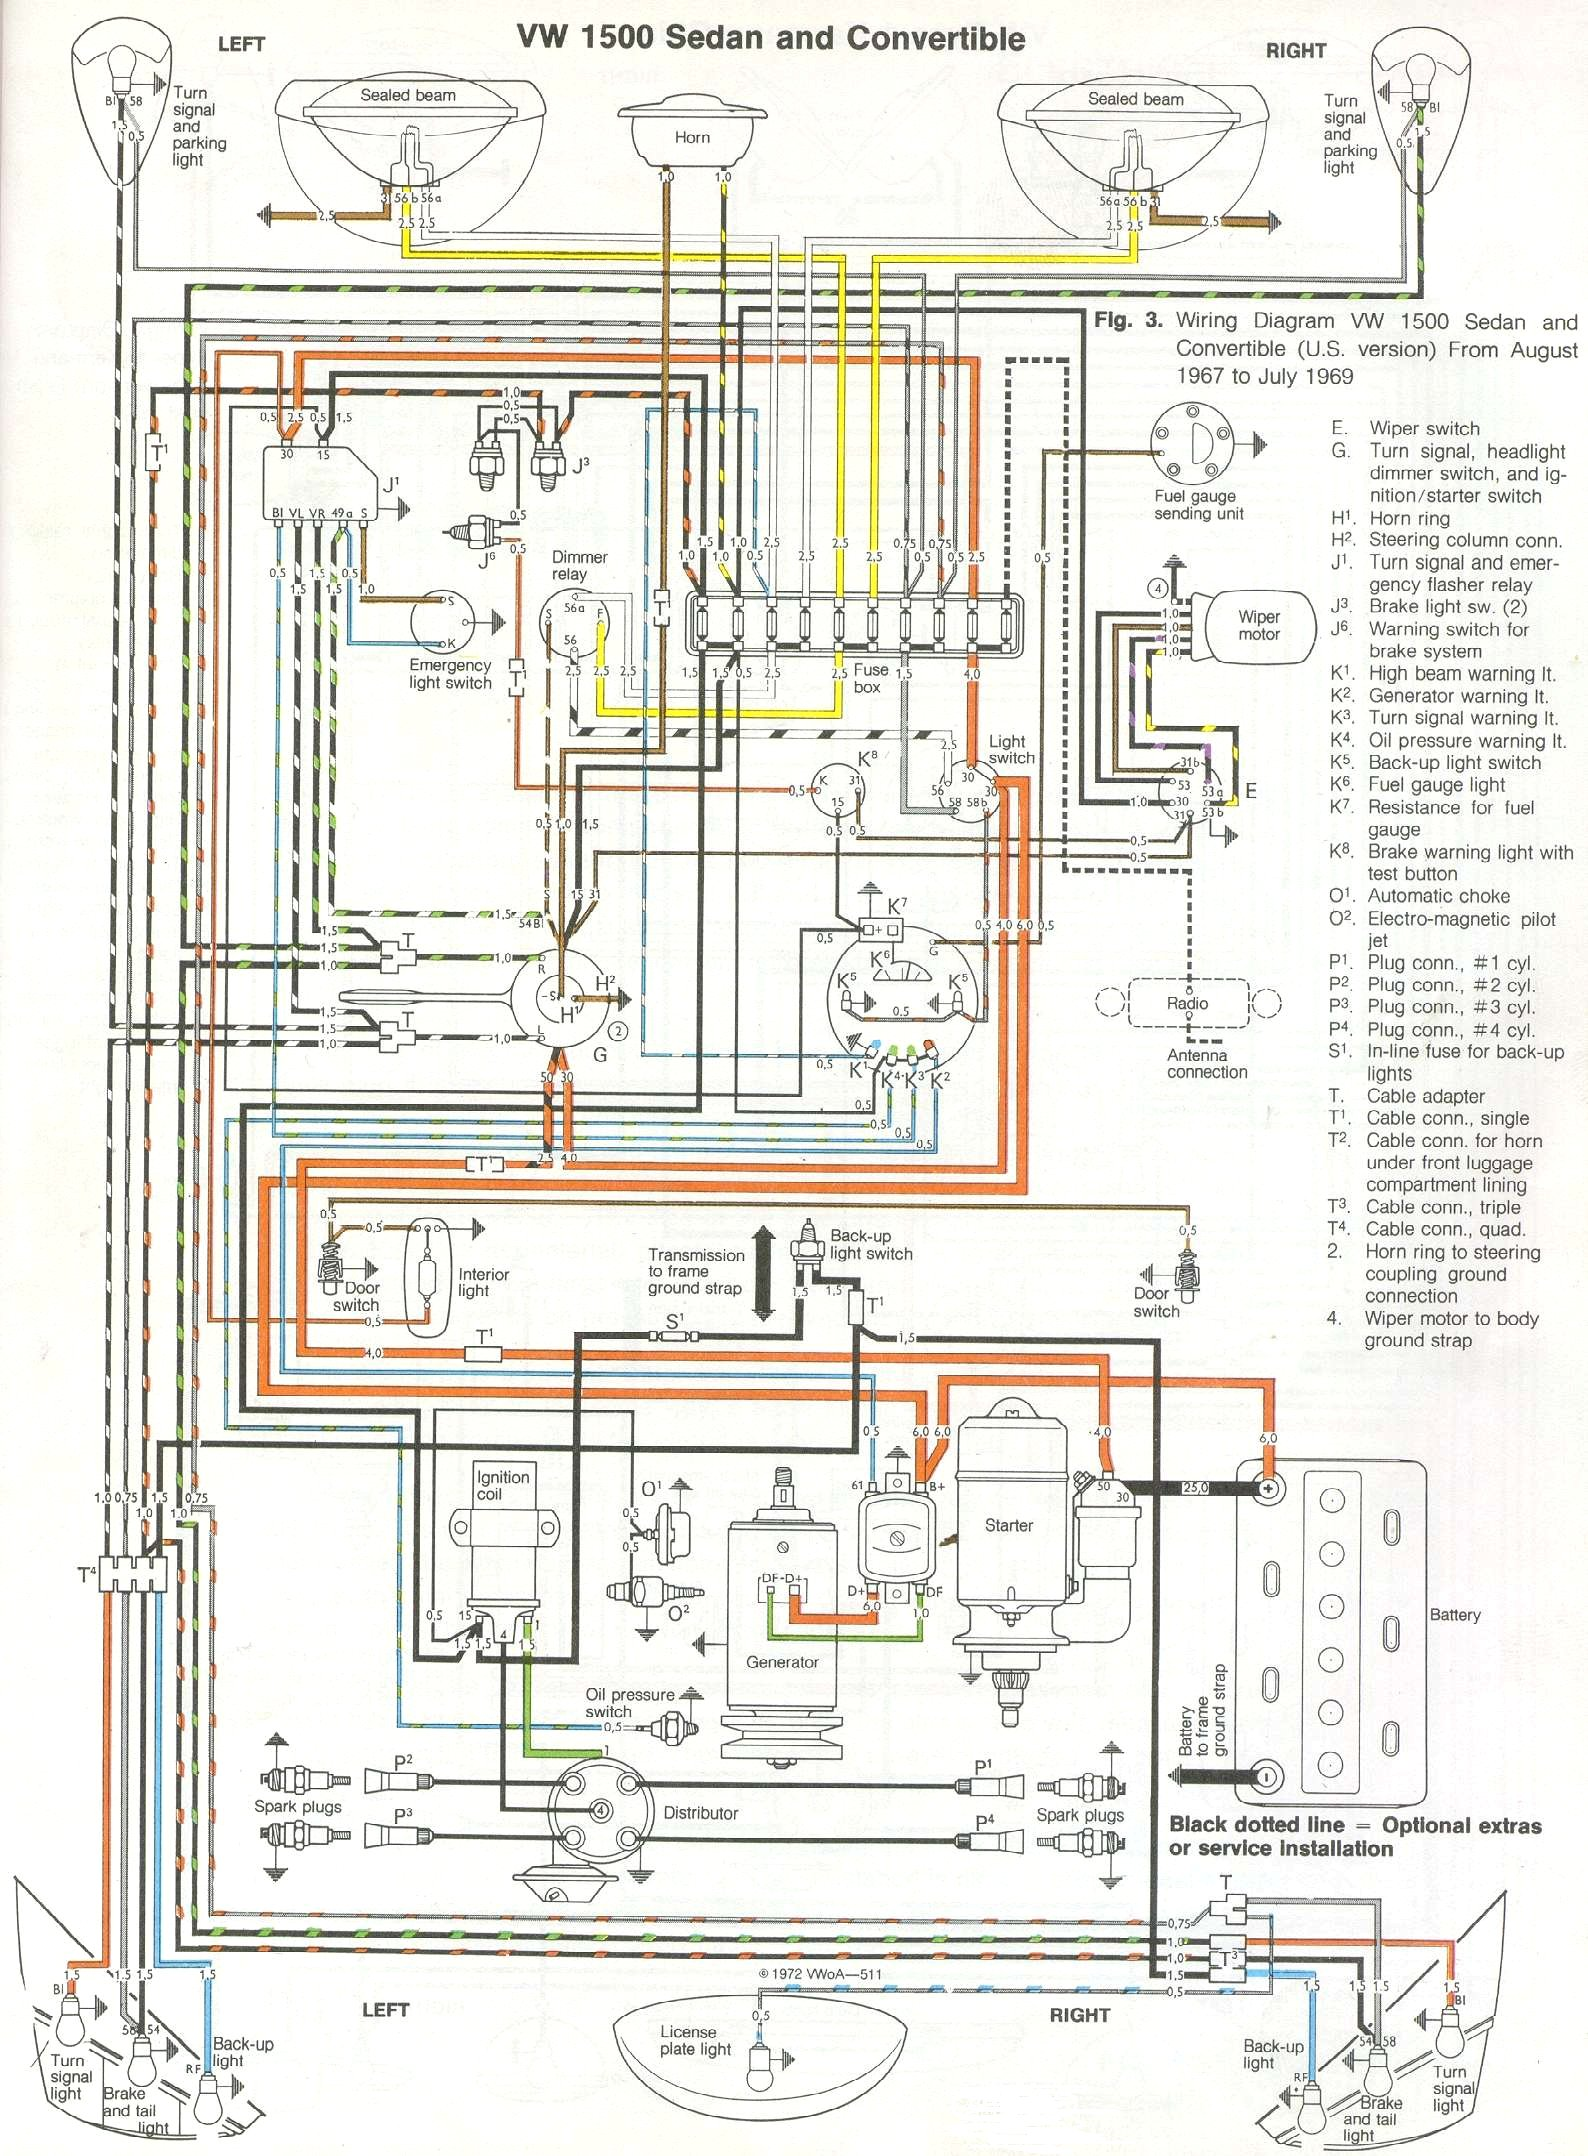 1968 69 beetle wiring diagram (usa) thegoldenbug com vw tech article 1968 69 wiring diagram